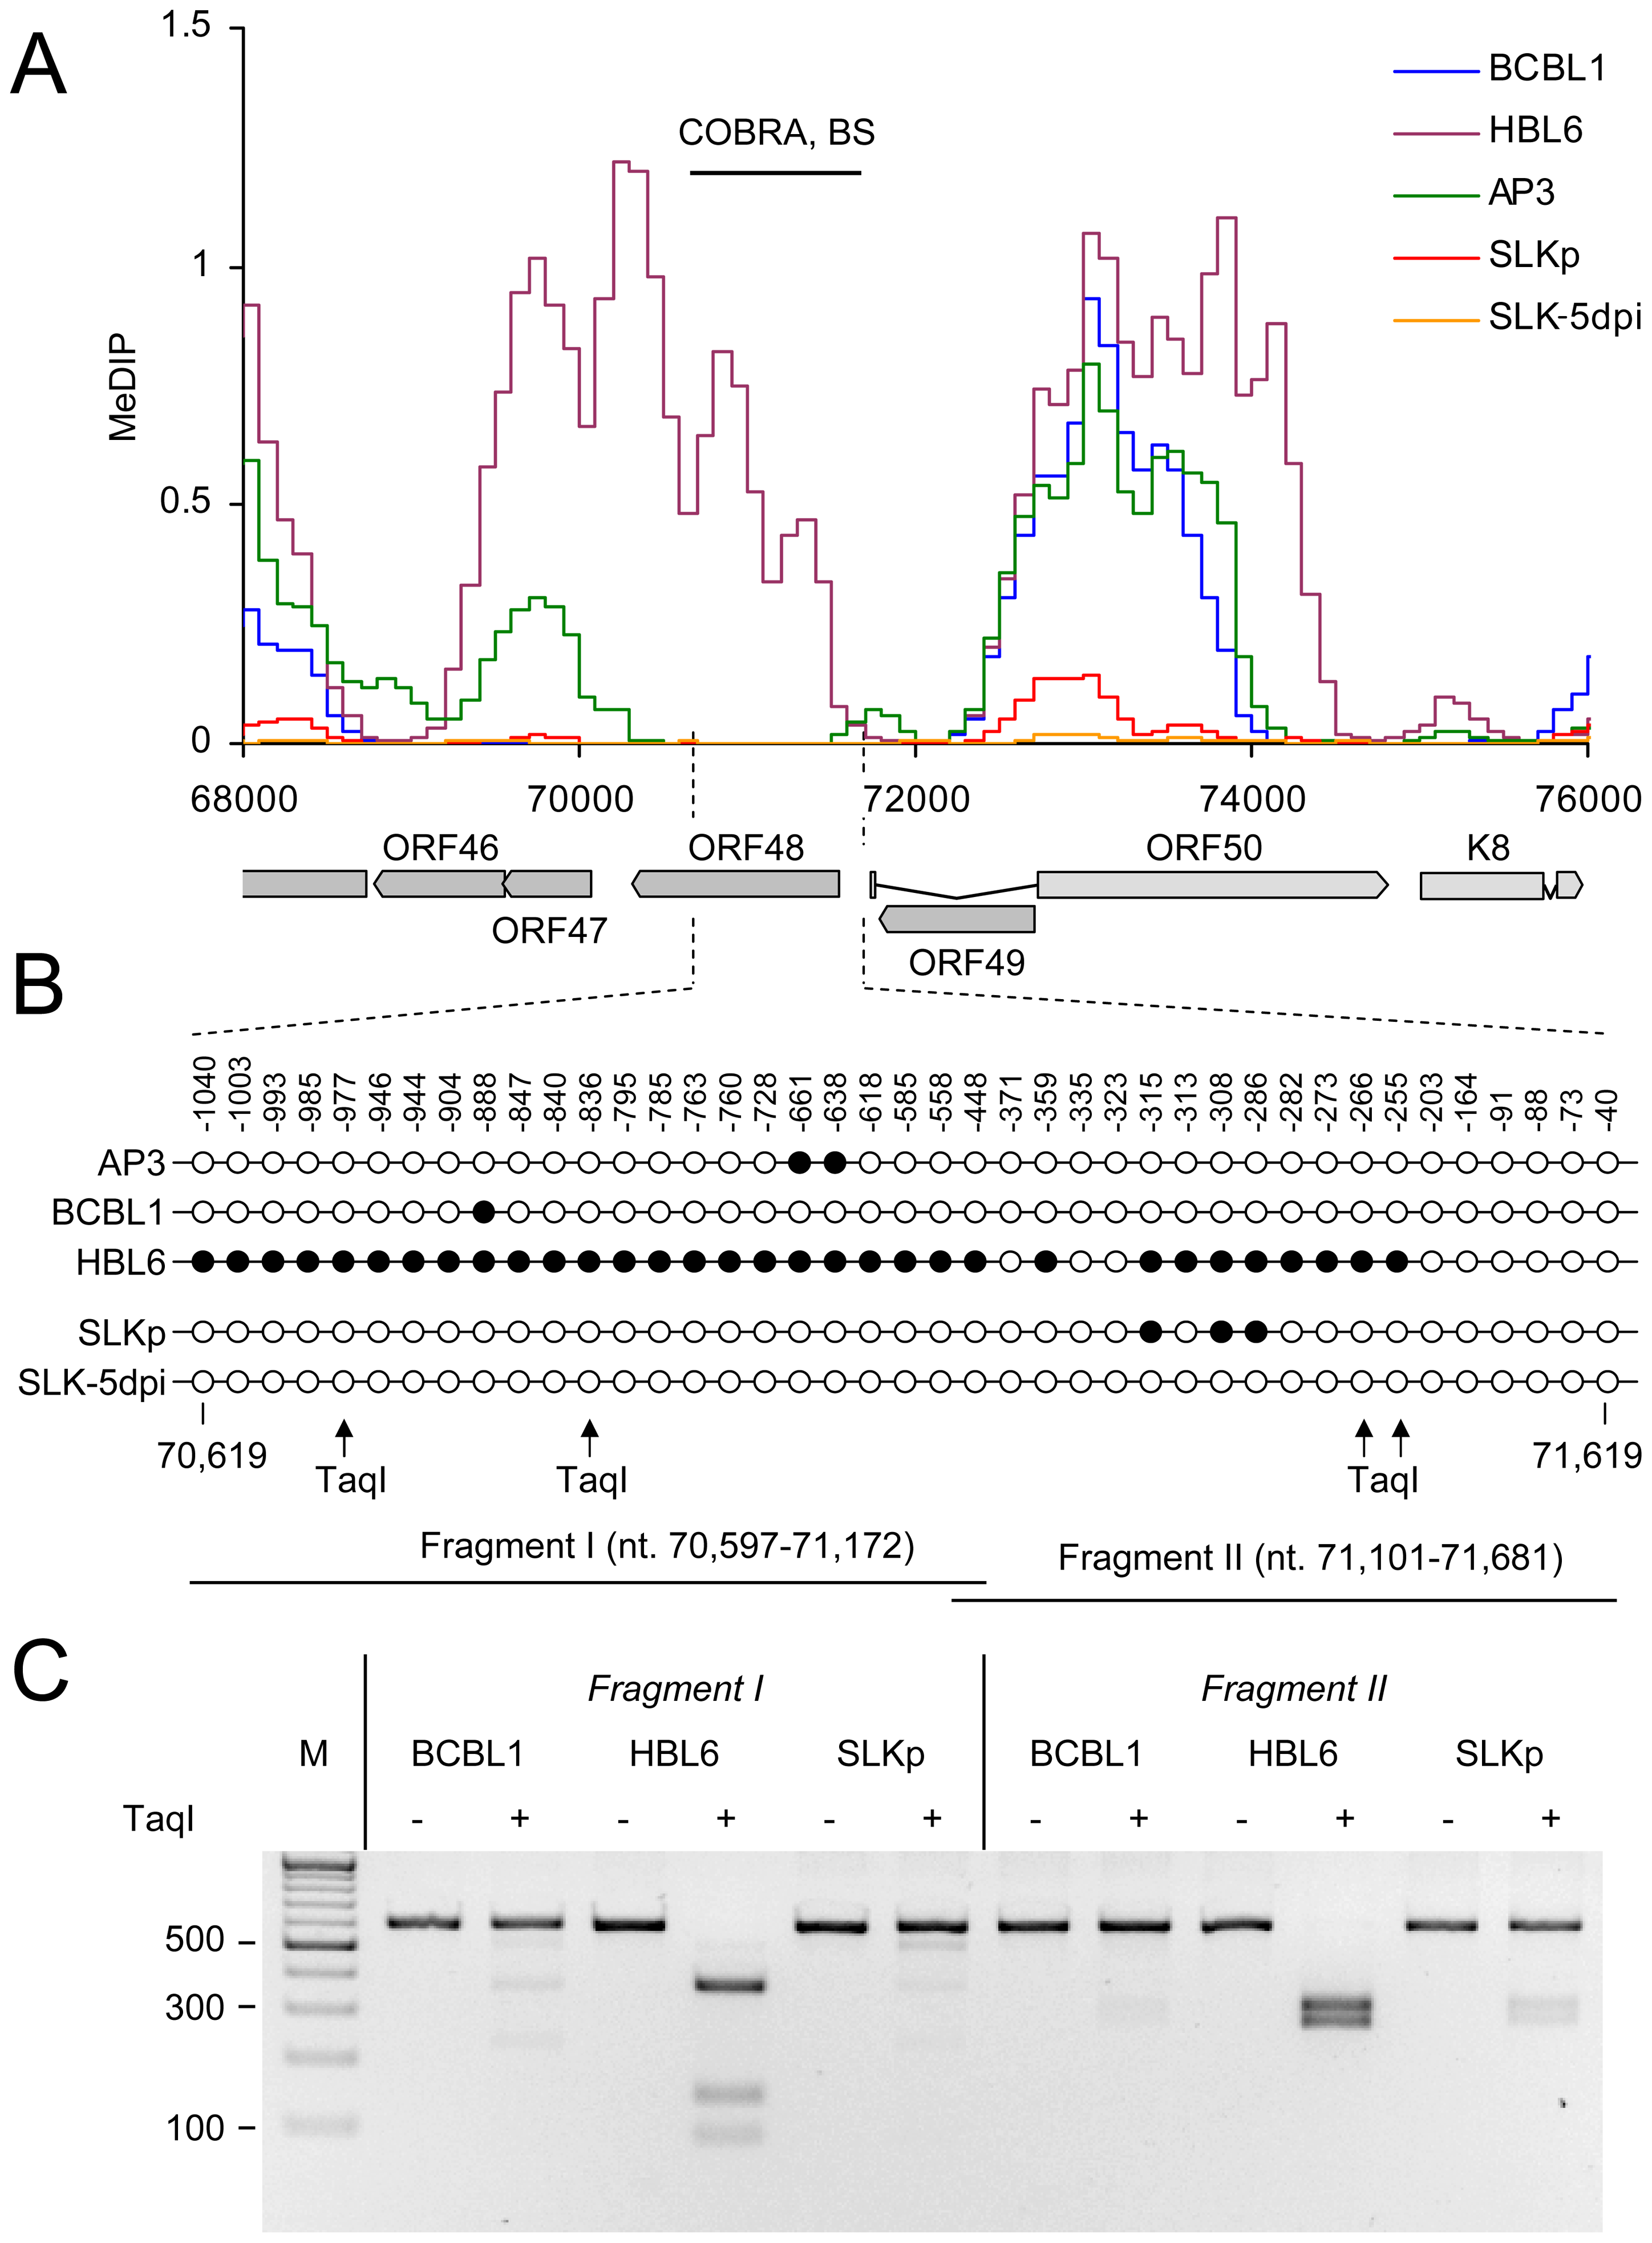 DNA Methylation at the ORF50 promoter.